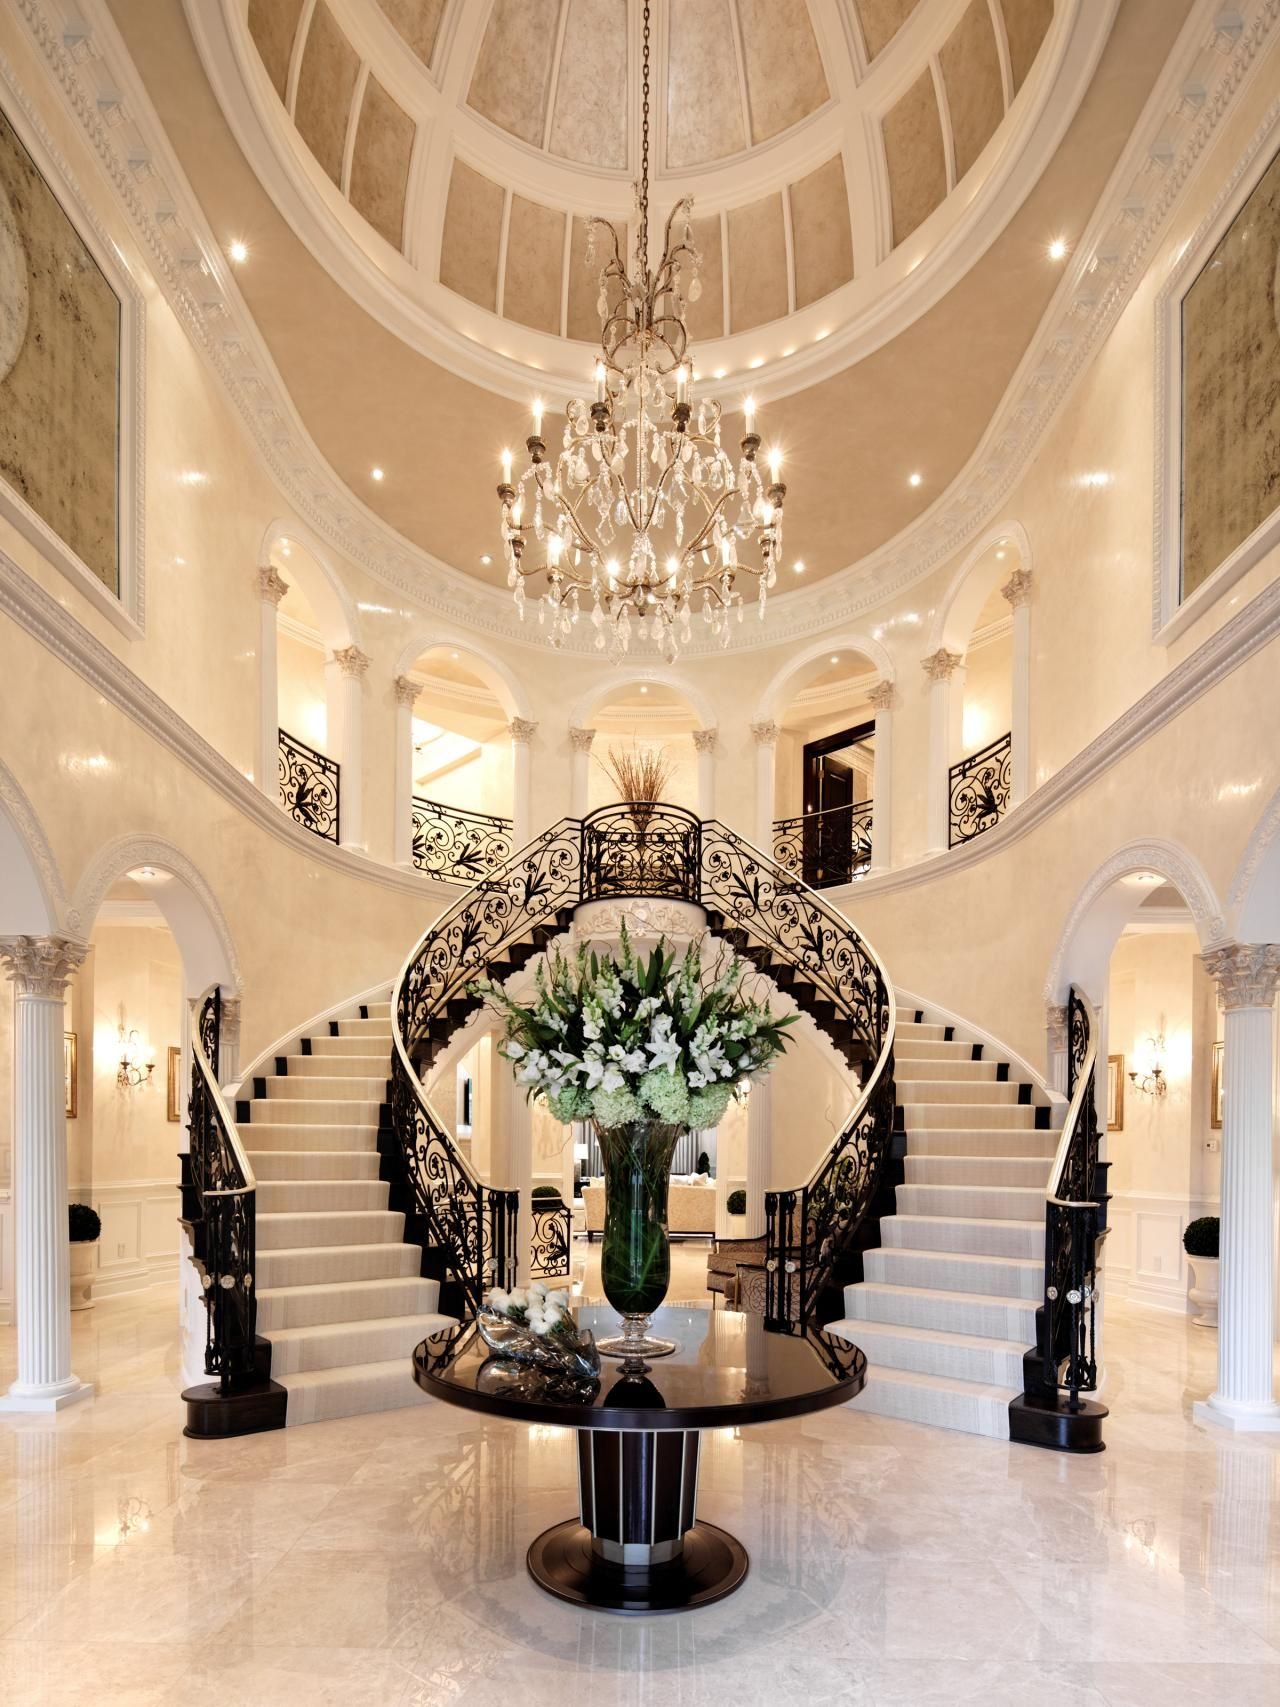 Best A Spacious Foyer With A Domed Ceiling And Double Staircase 400 x 300